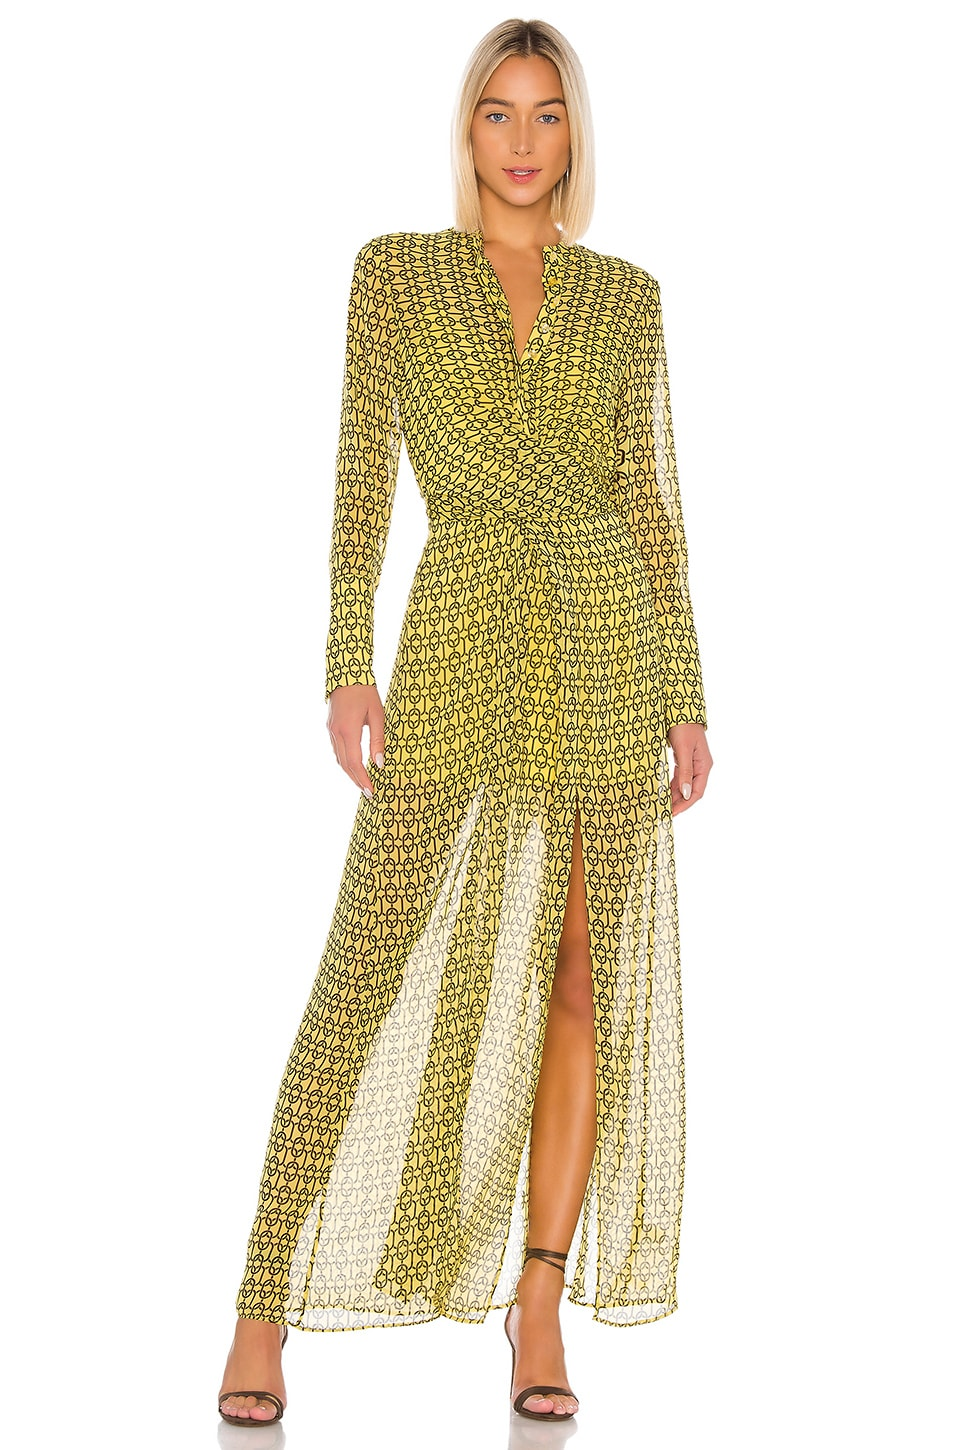 L'Academie The Lumiere Maxi Dress in Gold Chain